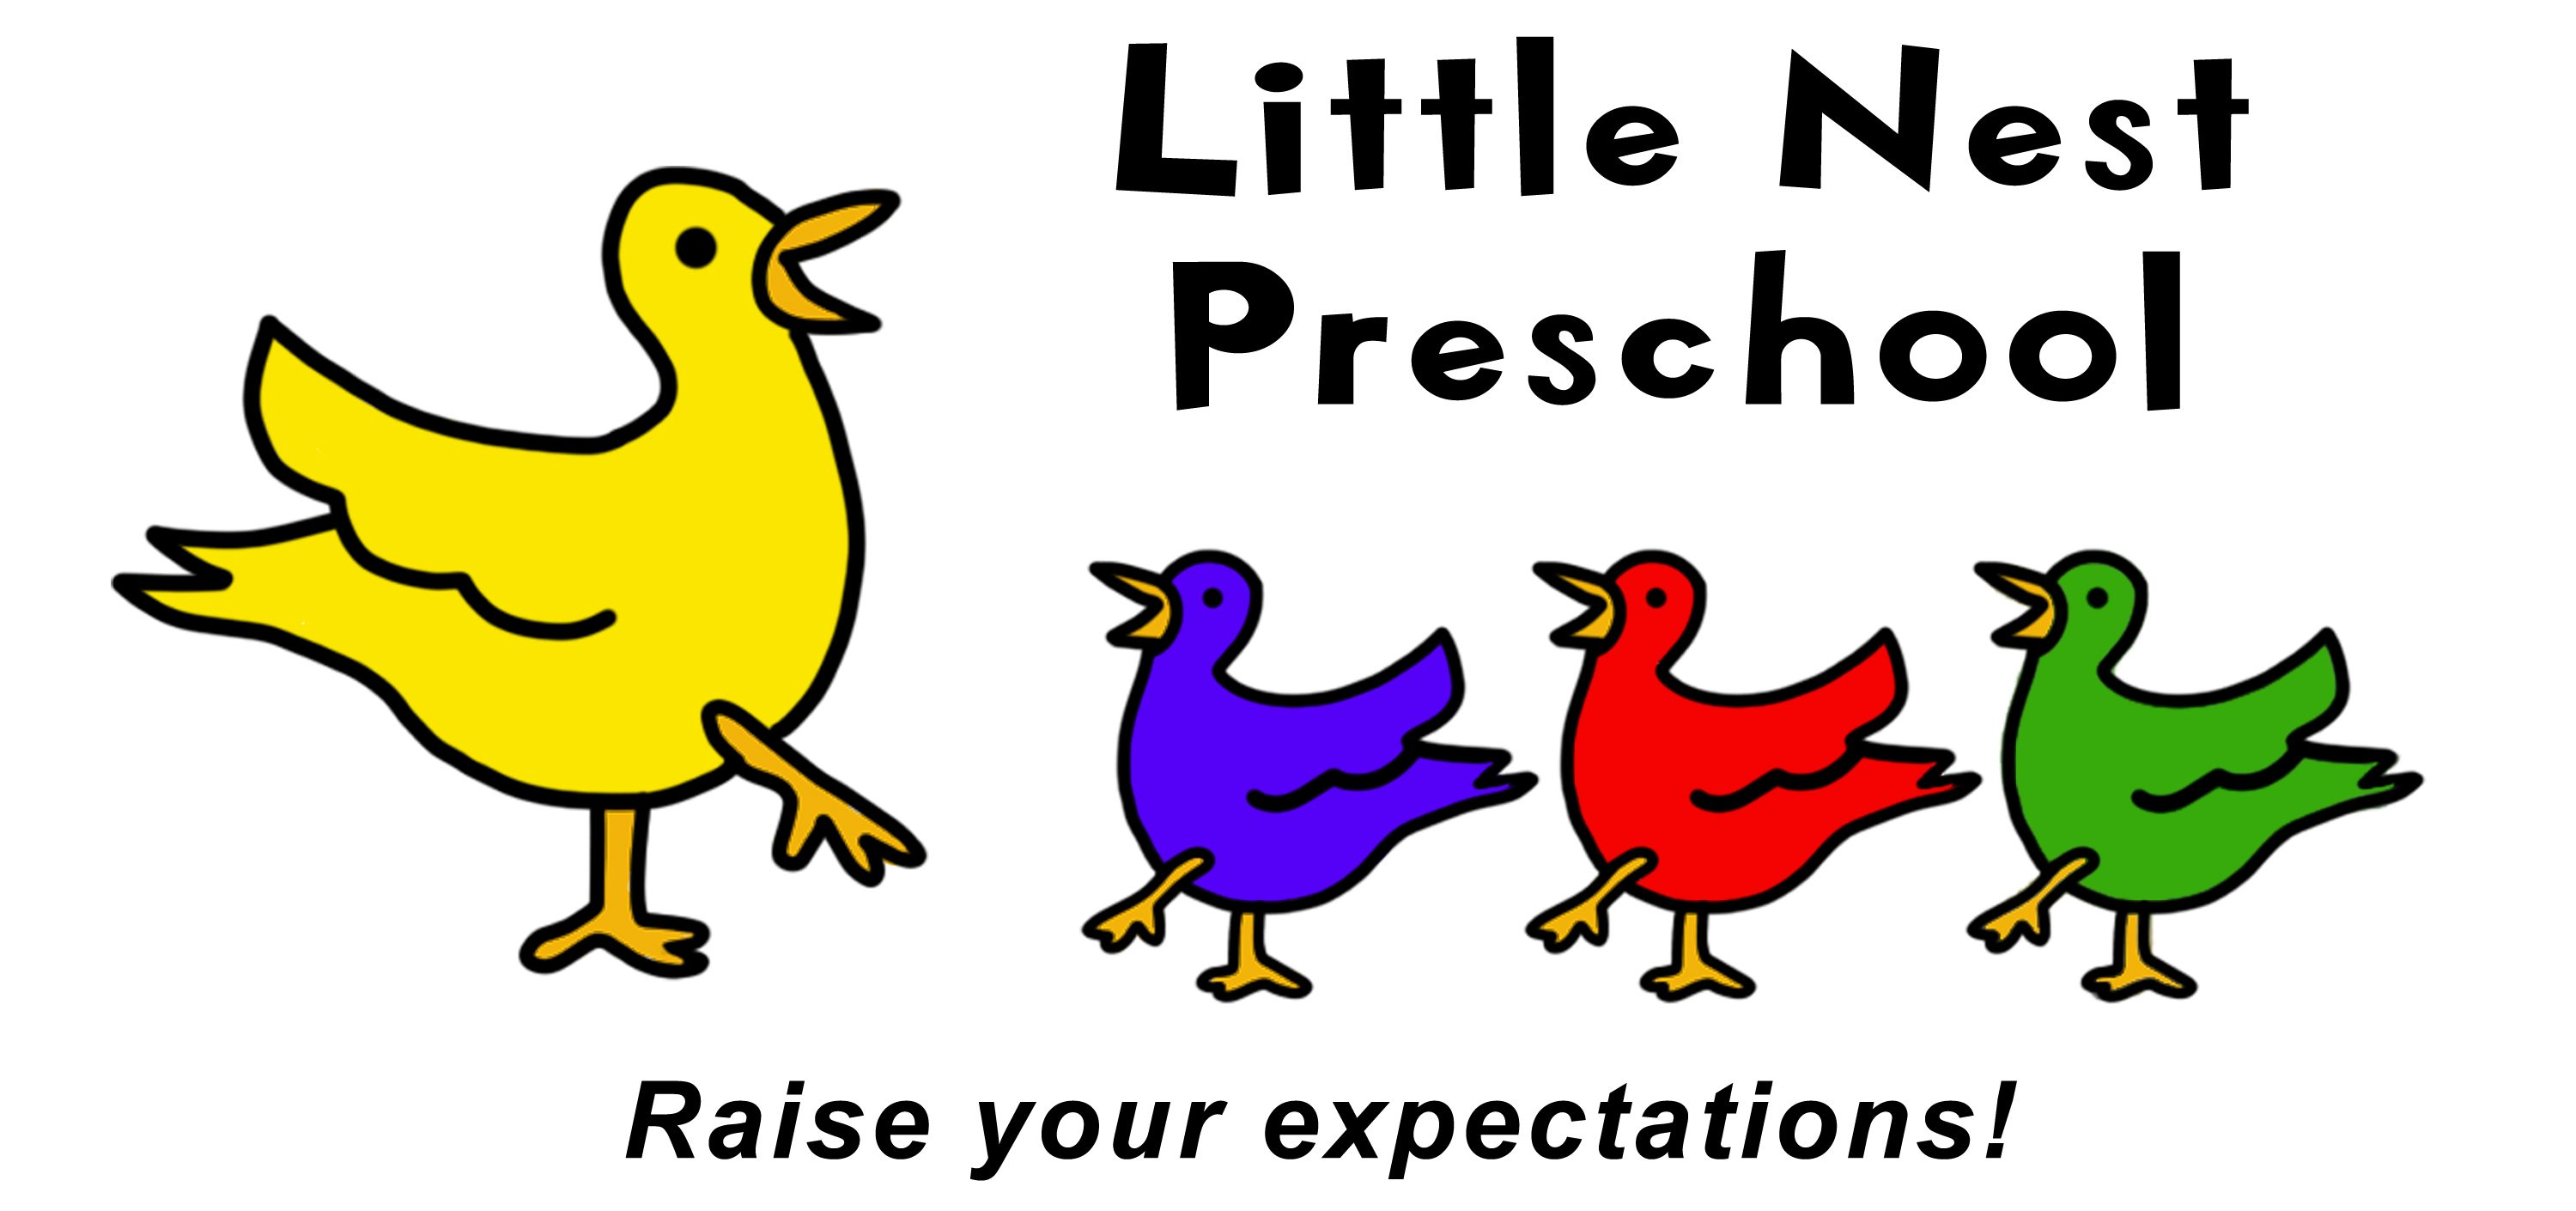 Little Nest Preschool